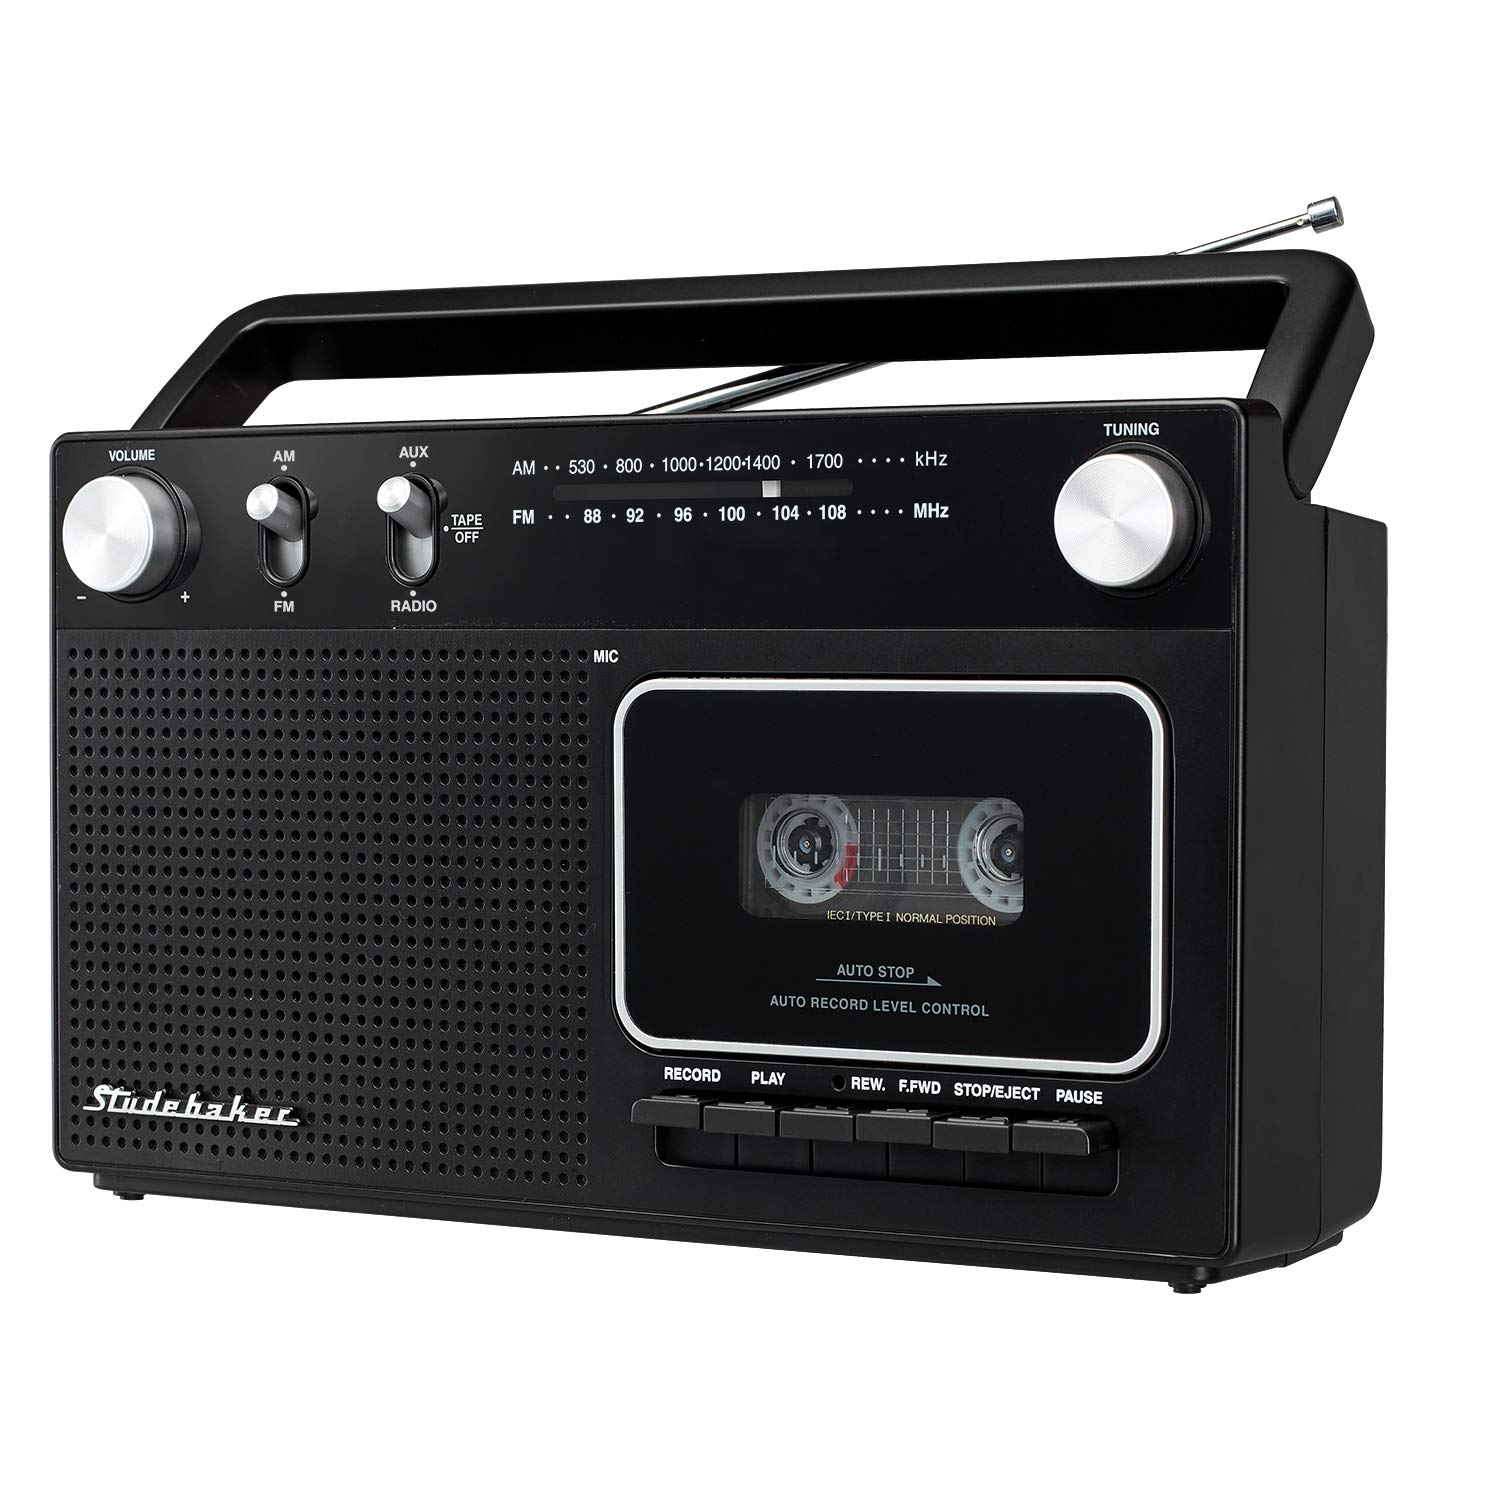 Studebaker Portable Retro Home Audio Stereo AM/FM Radio & Cassette Player/Recorder with Aux Input Jack & Built in Speakers (Silver) by Studebaker (Image #1)